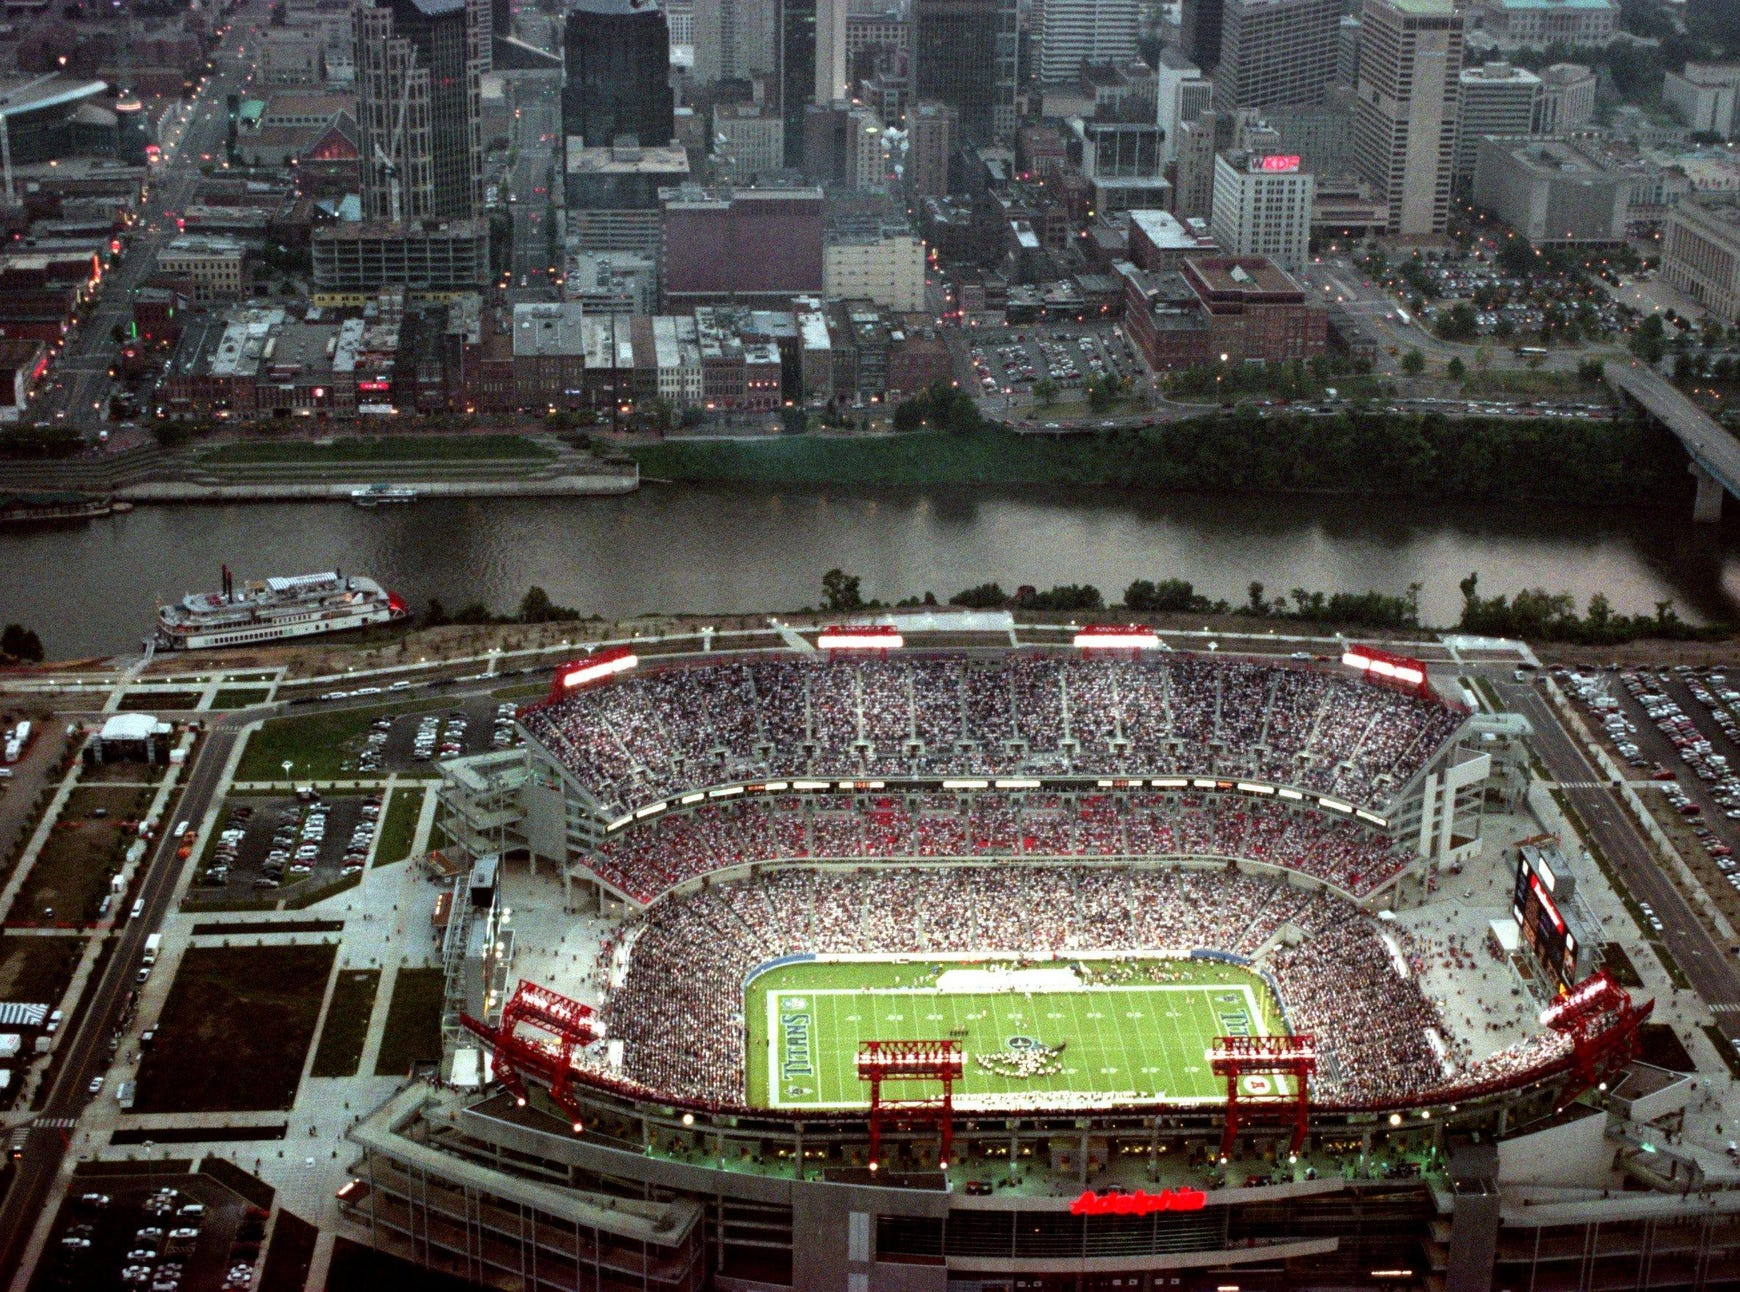 The opening game of the Tennessee Titans and the Atlanta Falcons packed the new Adelphia Coliseum in their first home game ever during the preseason battle Aug. 27, 1999.